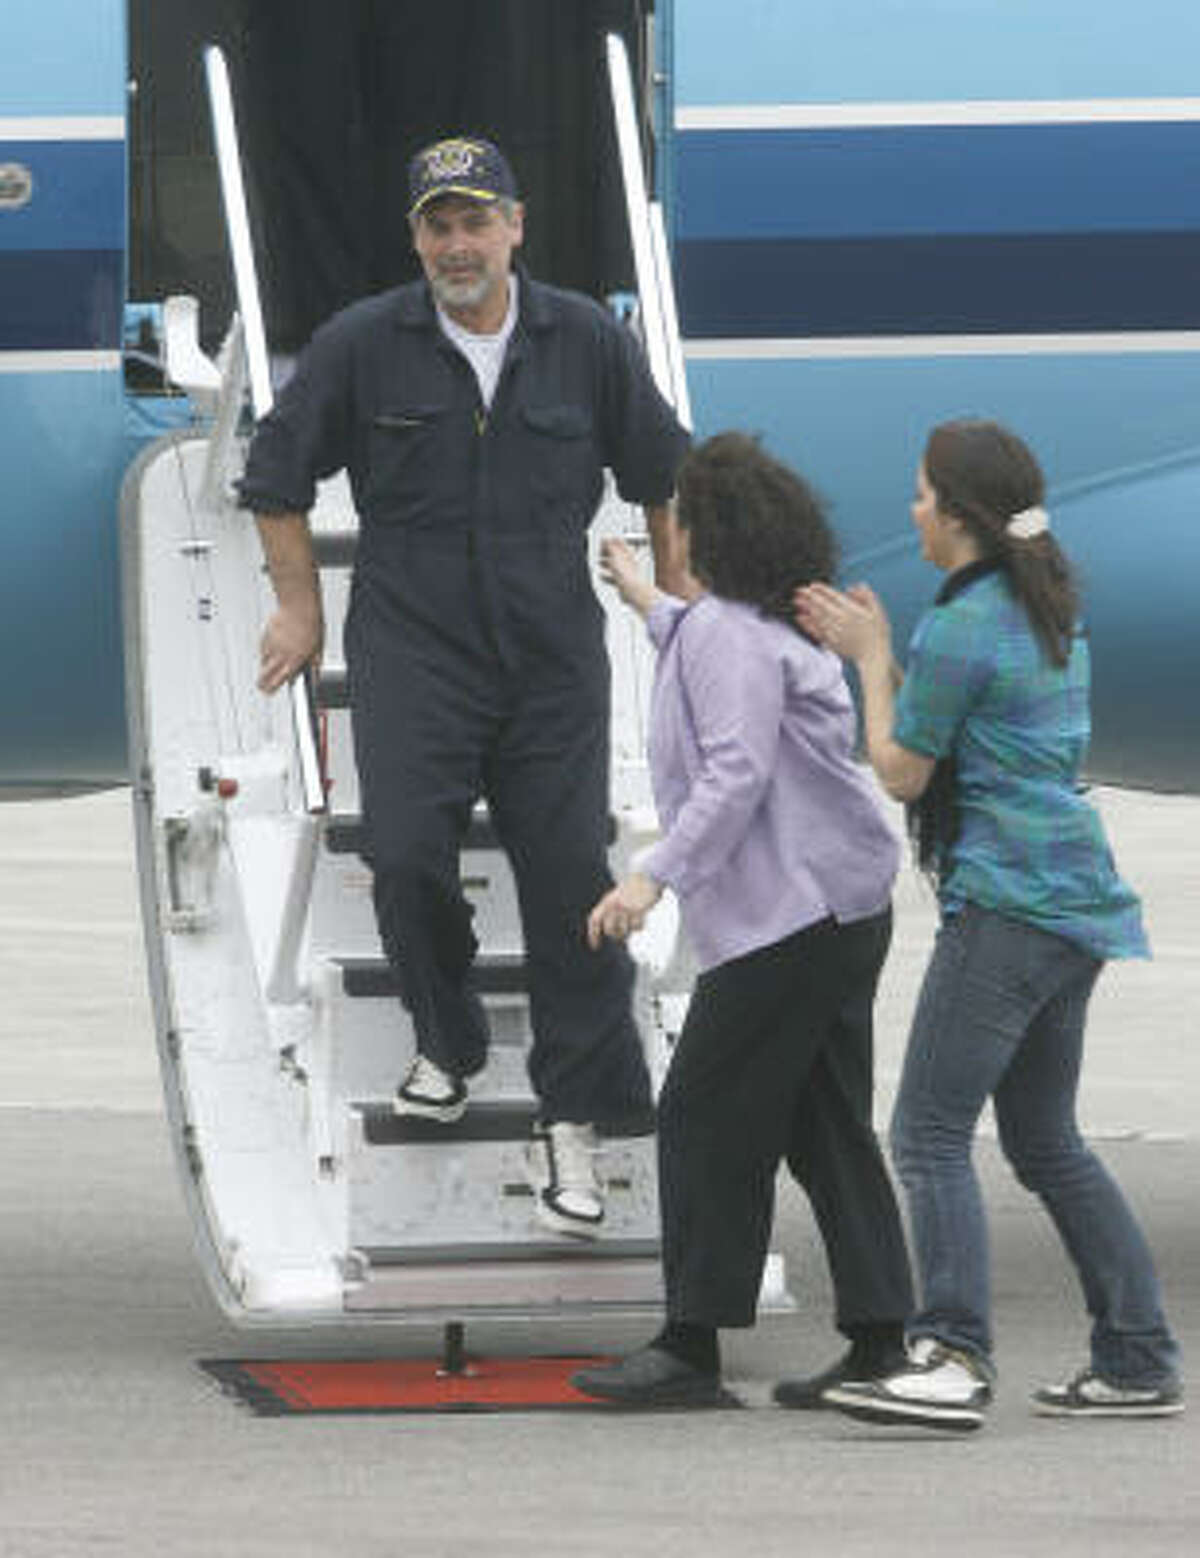 Phillips' wife, Andrea, center, and his daughter, Mariah, are among the first to welcome Phillips as he departs his plane in South Burlington, Vt.